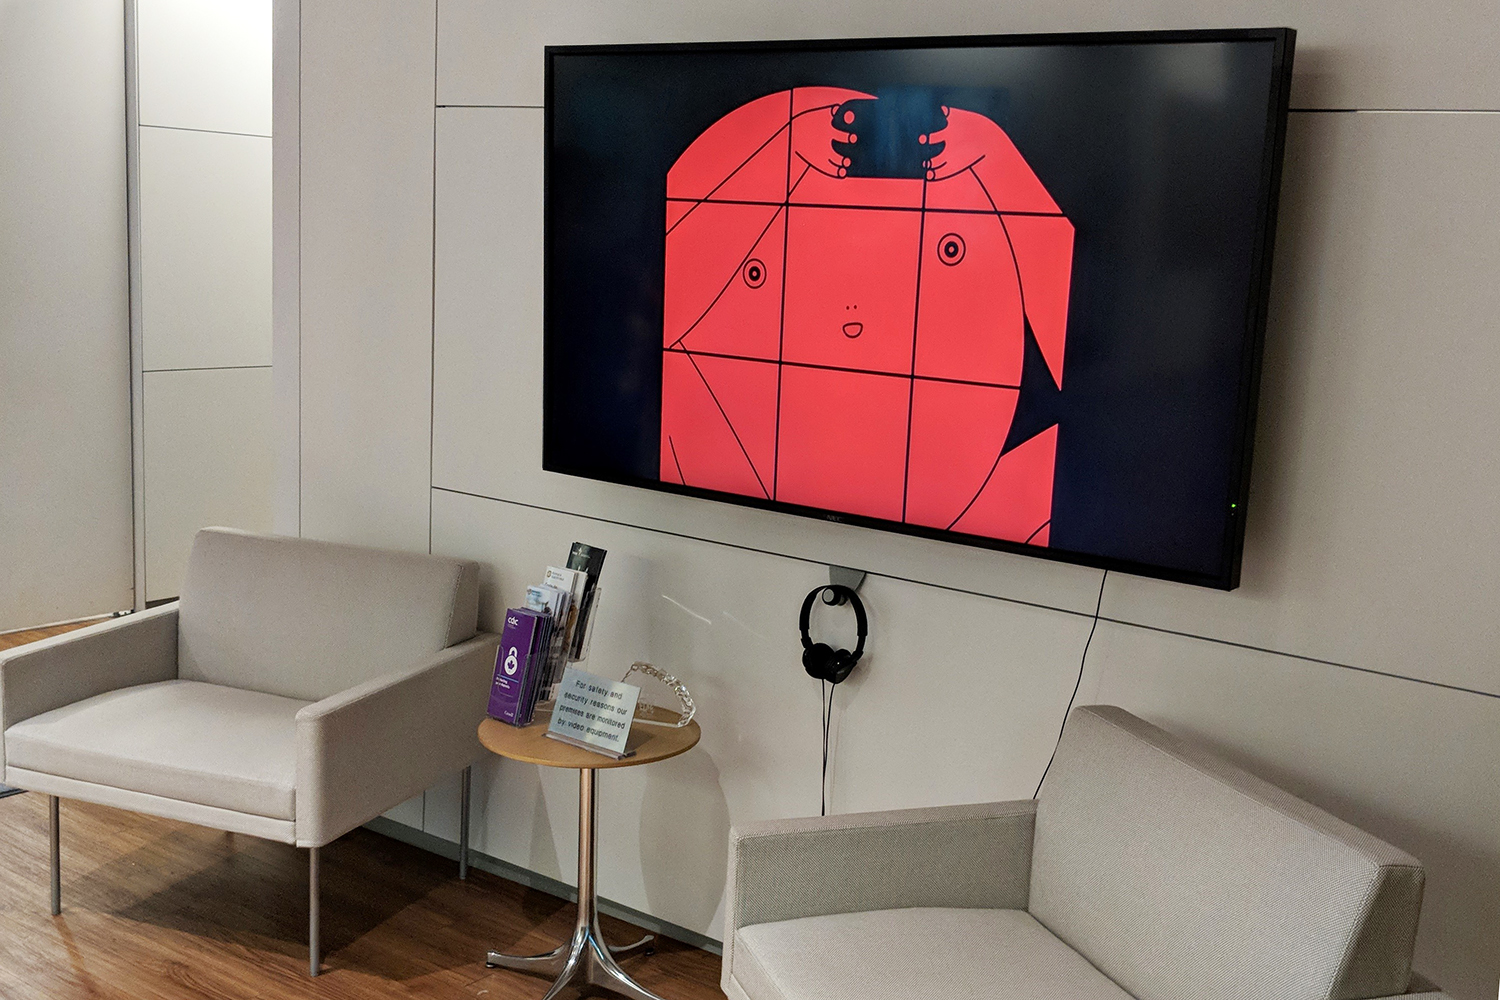 Fanny Huard, AEIUO, 2017, Animation (still), playing on-screen in reception at Equitable's head office, Toronto